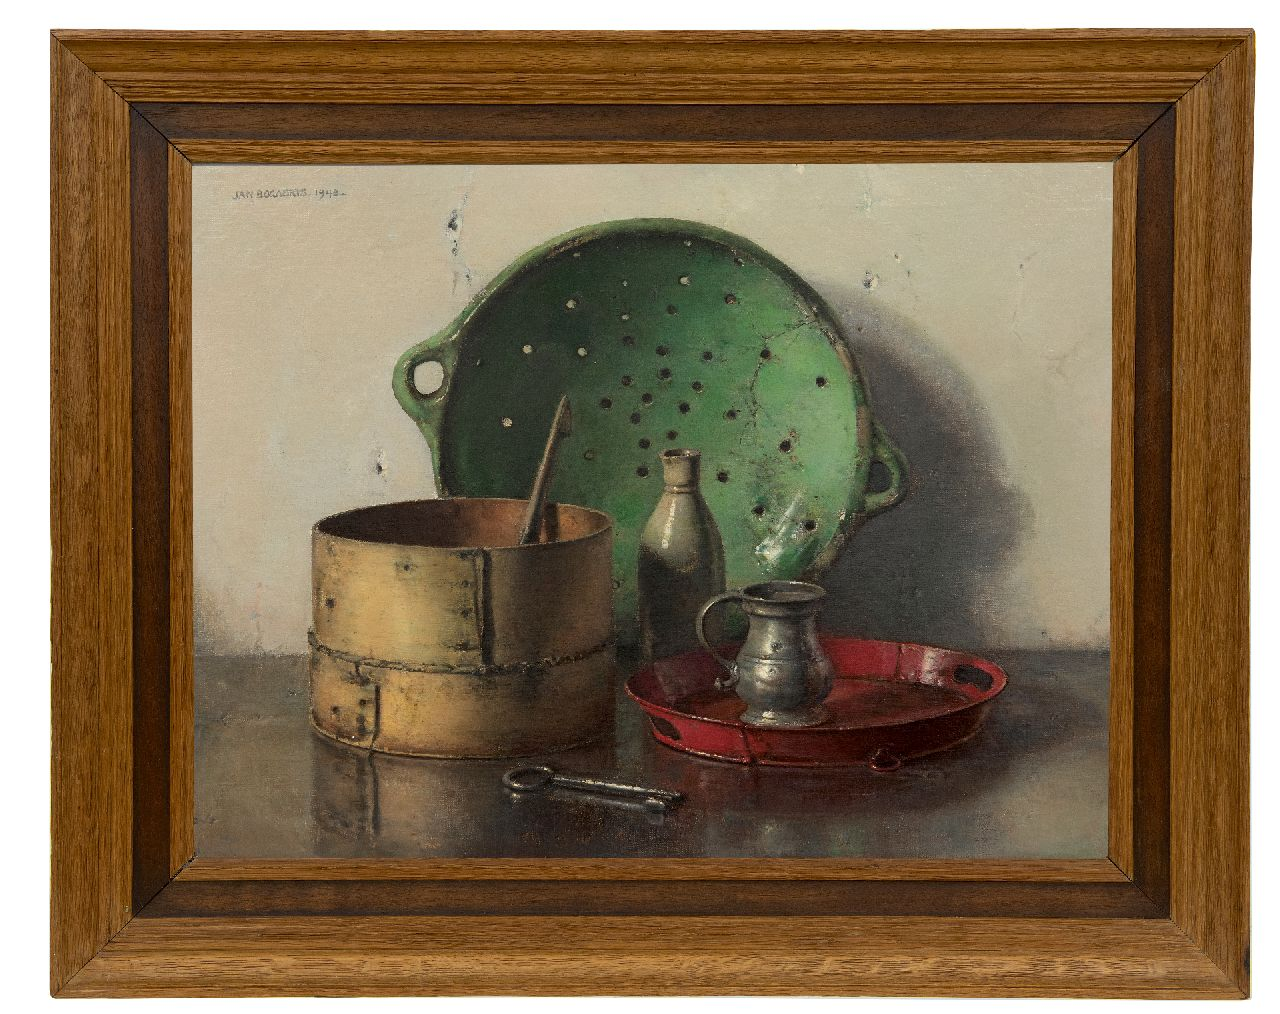 Bogaerts J.J.M.  | Johannes Jacobus Maria 'Jan' Bogaerts, Still life with a green strainer, oil on canvas 50.2 x 66.1 cm, signed u.l. and dated 1948